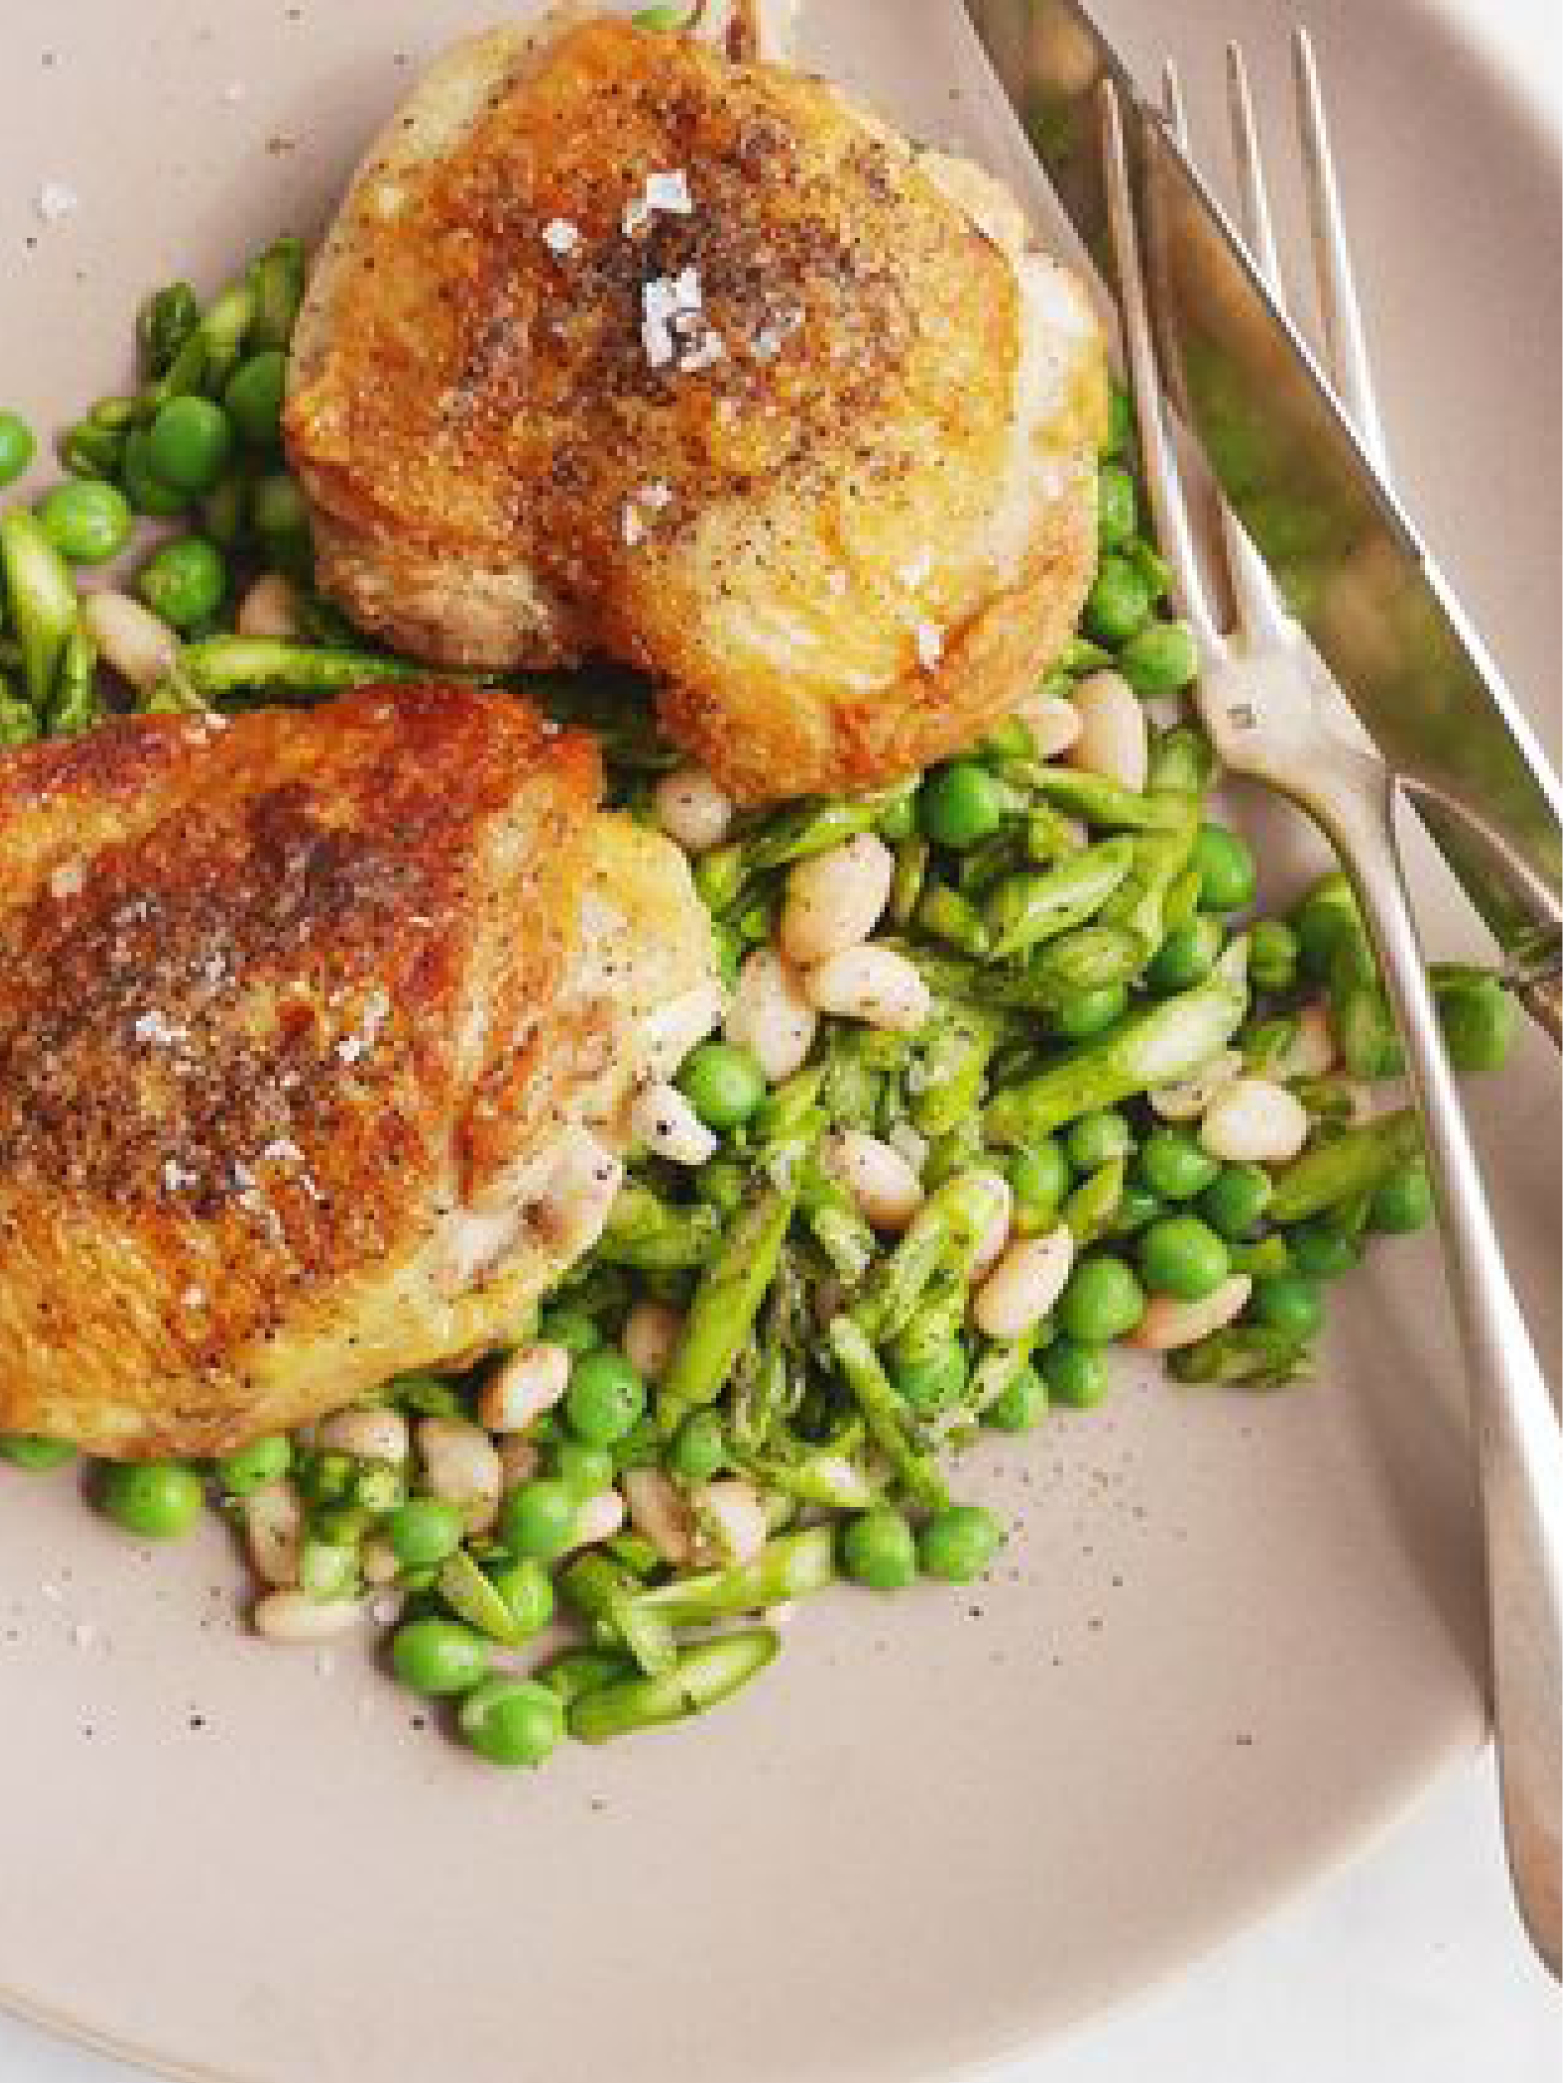 Garlicky Chicken Thighs with Asparagus, Pea, and White Bean Salad  Delish